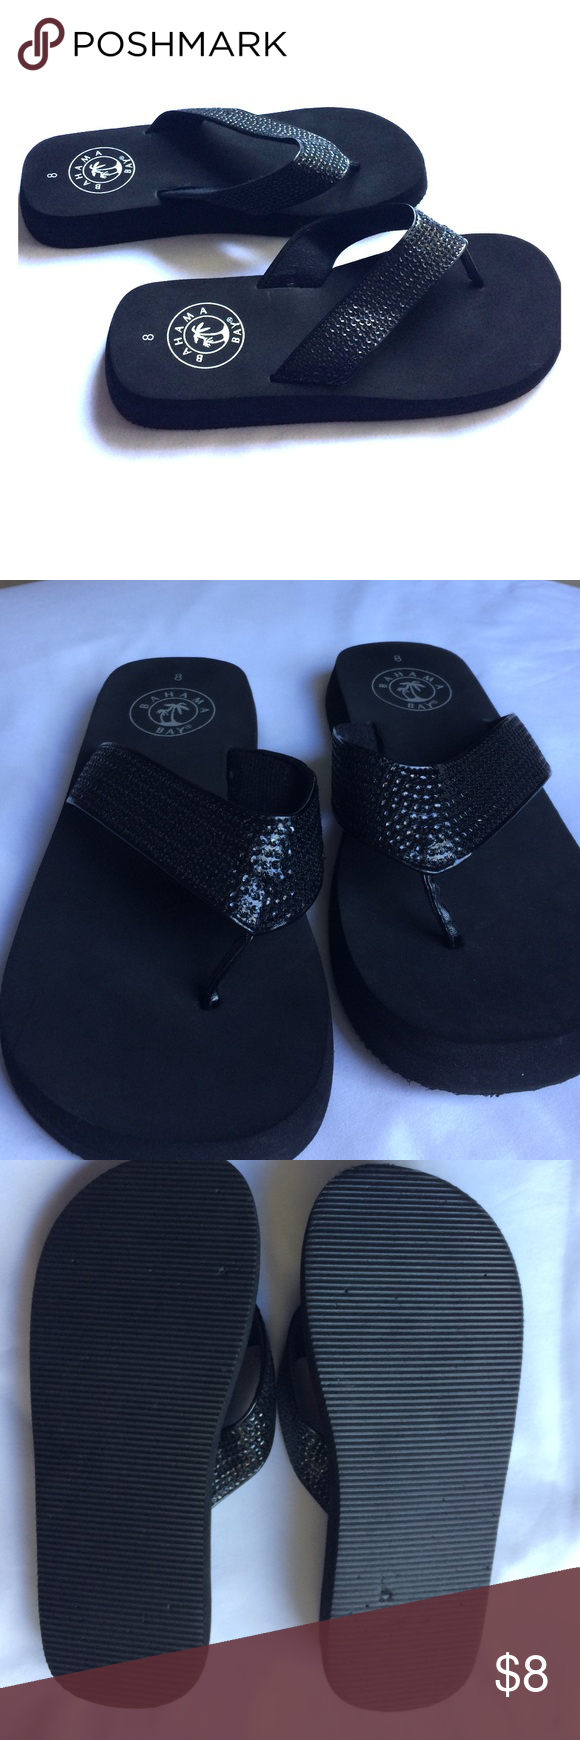 376b5898af8 BAHAMA BAY Flip Flops Worn once. Can fit sizes 7 and 7.5 Bahama Bay ...